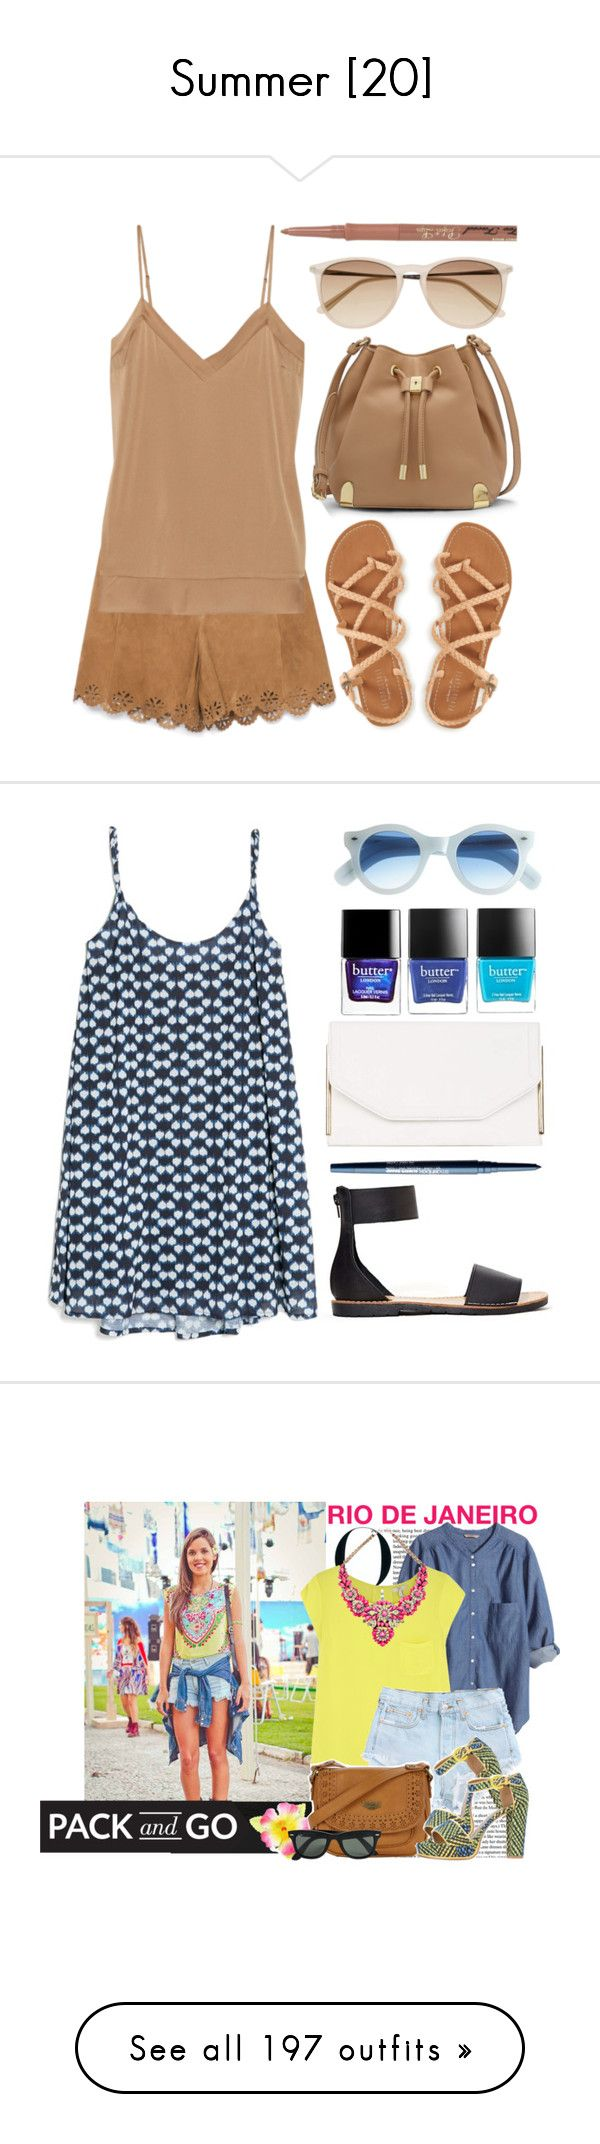 """Summer [20]"" by gdavilla ❤ liked on Polyvore featuring Zara, By Malene Birger, Witchery, Vince Camuto, Too Faced Cosmetics, Aéropostale, topsets, suede, chocolate and sunnies"